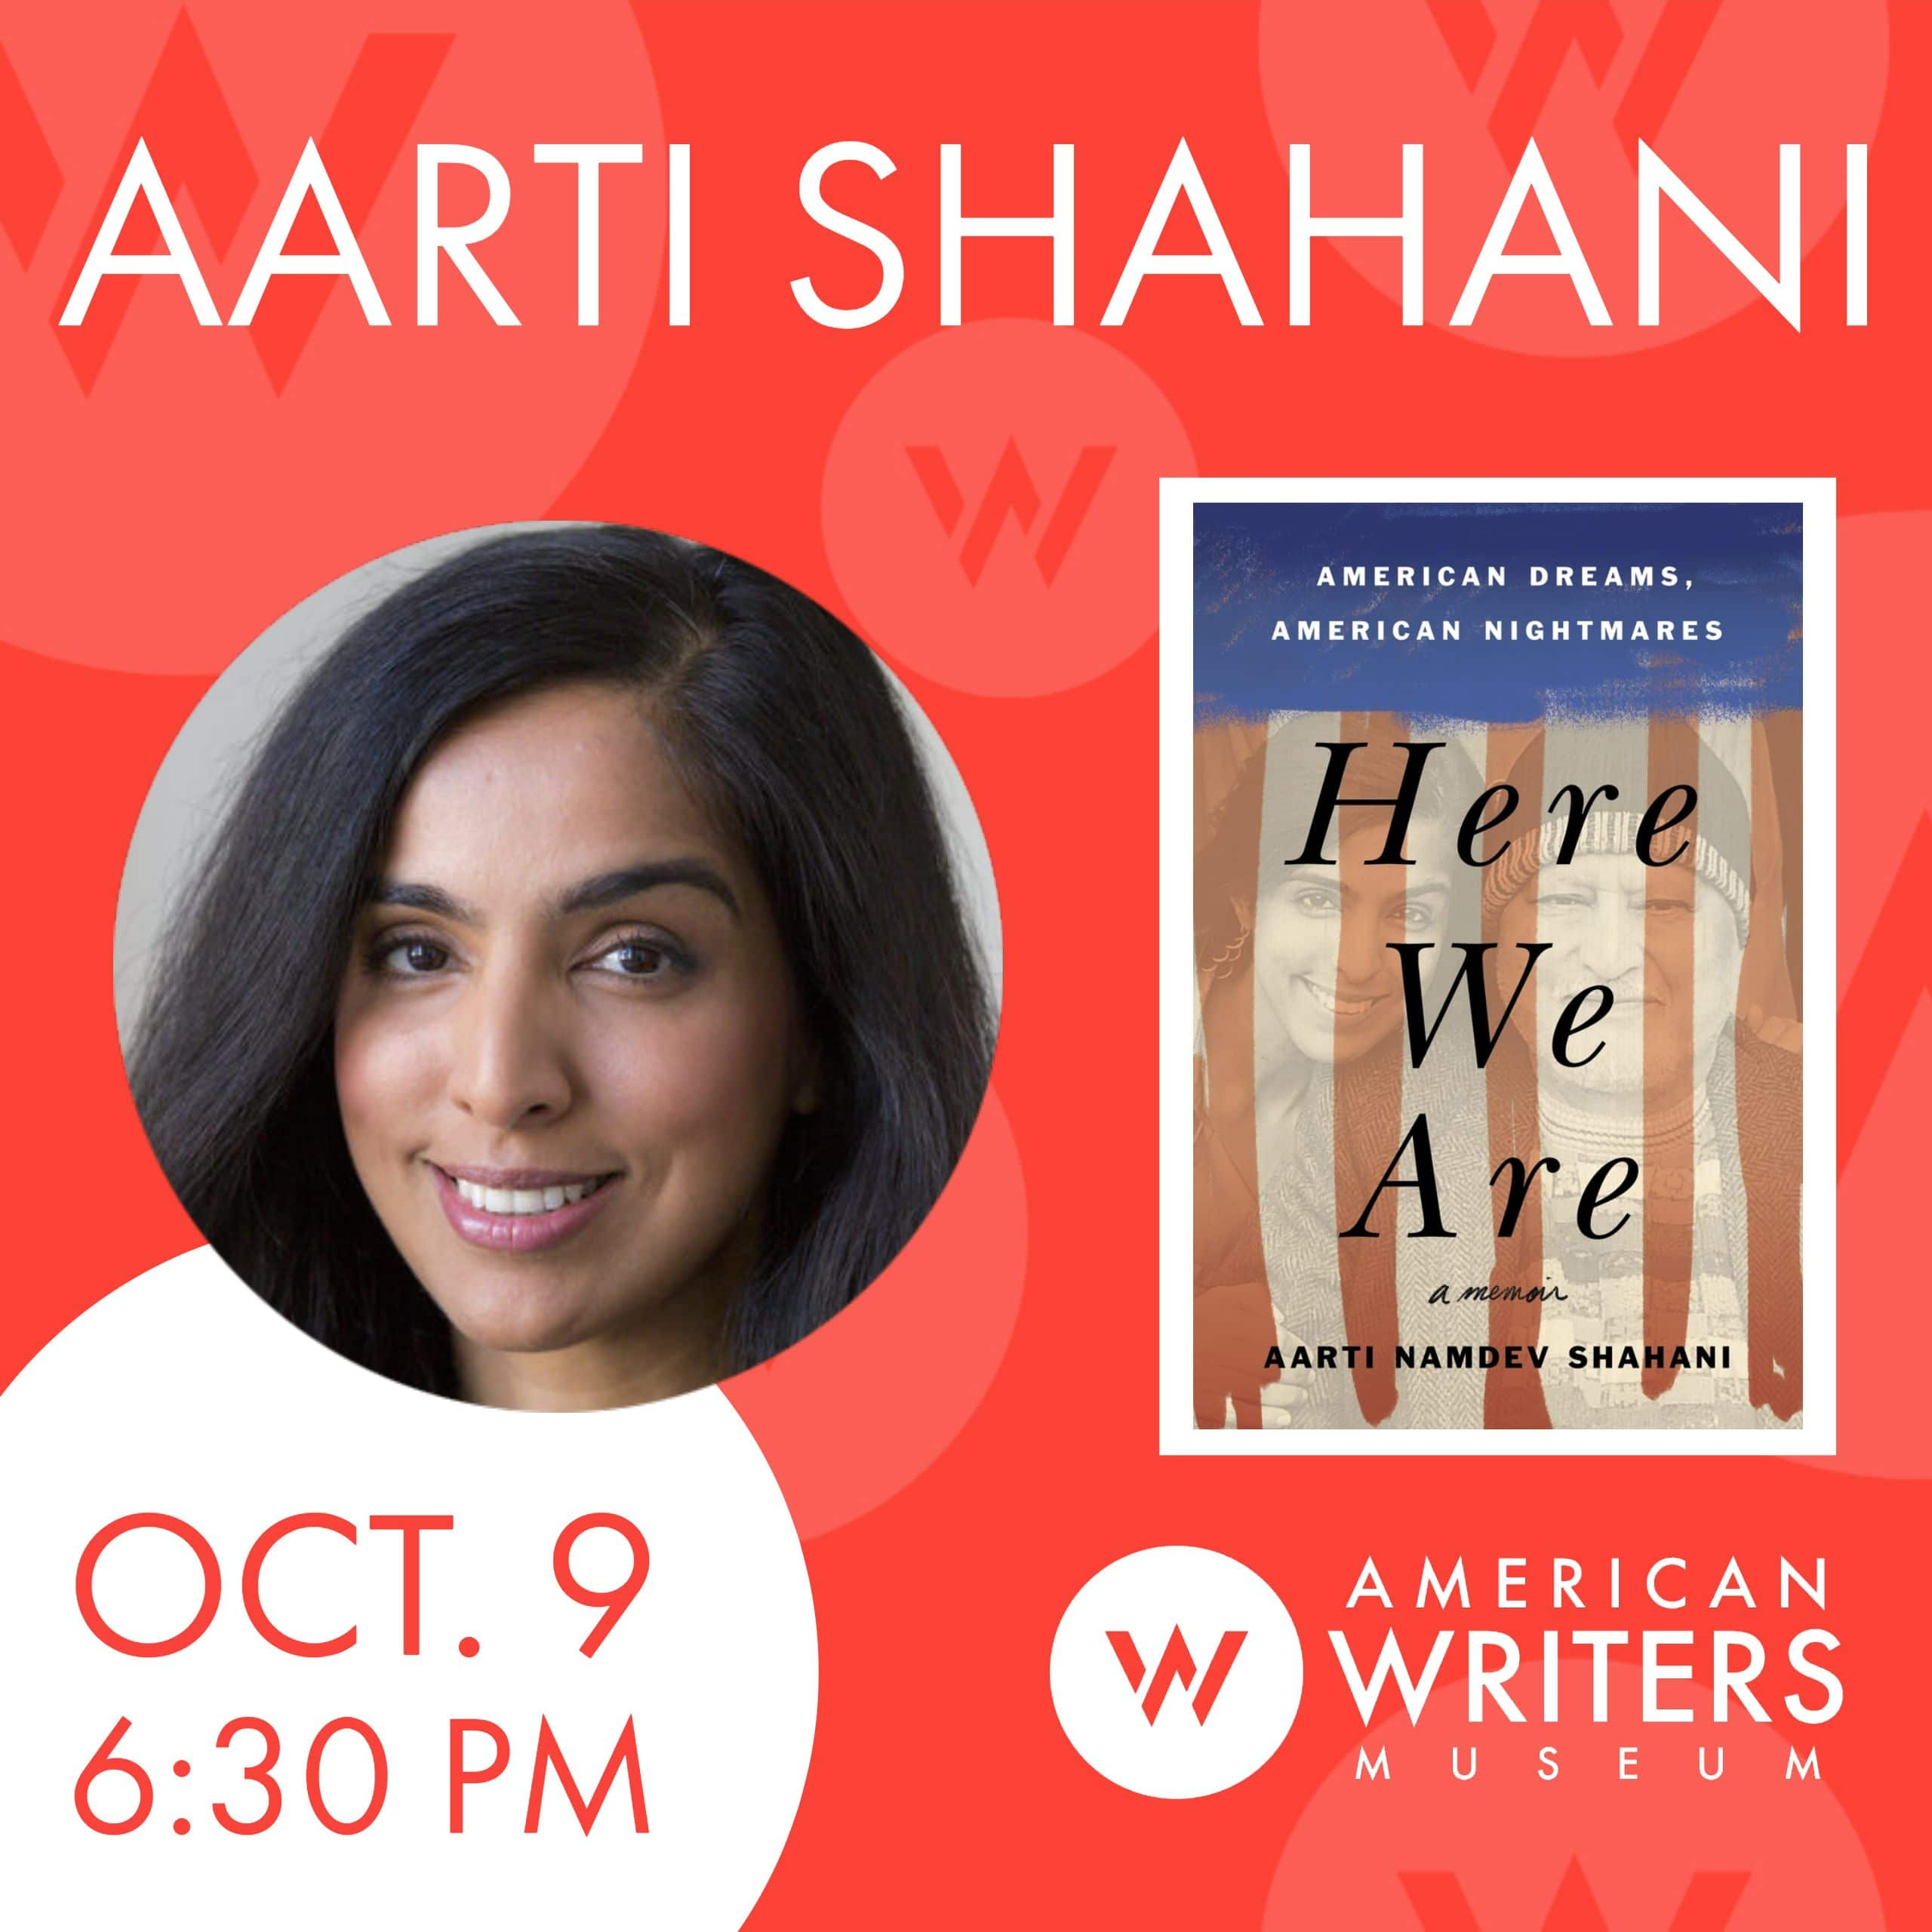 Aart Shahani presents her new book Here We Are at the American Writers Museum on October 9